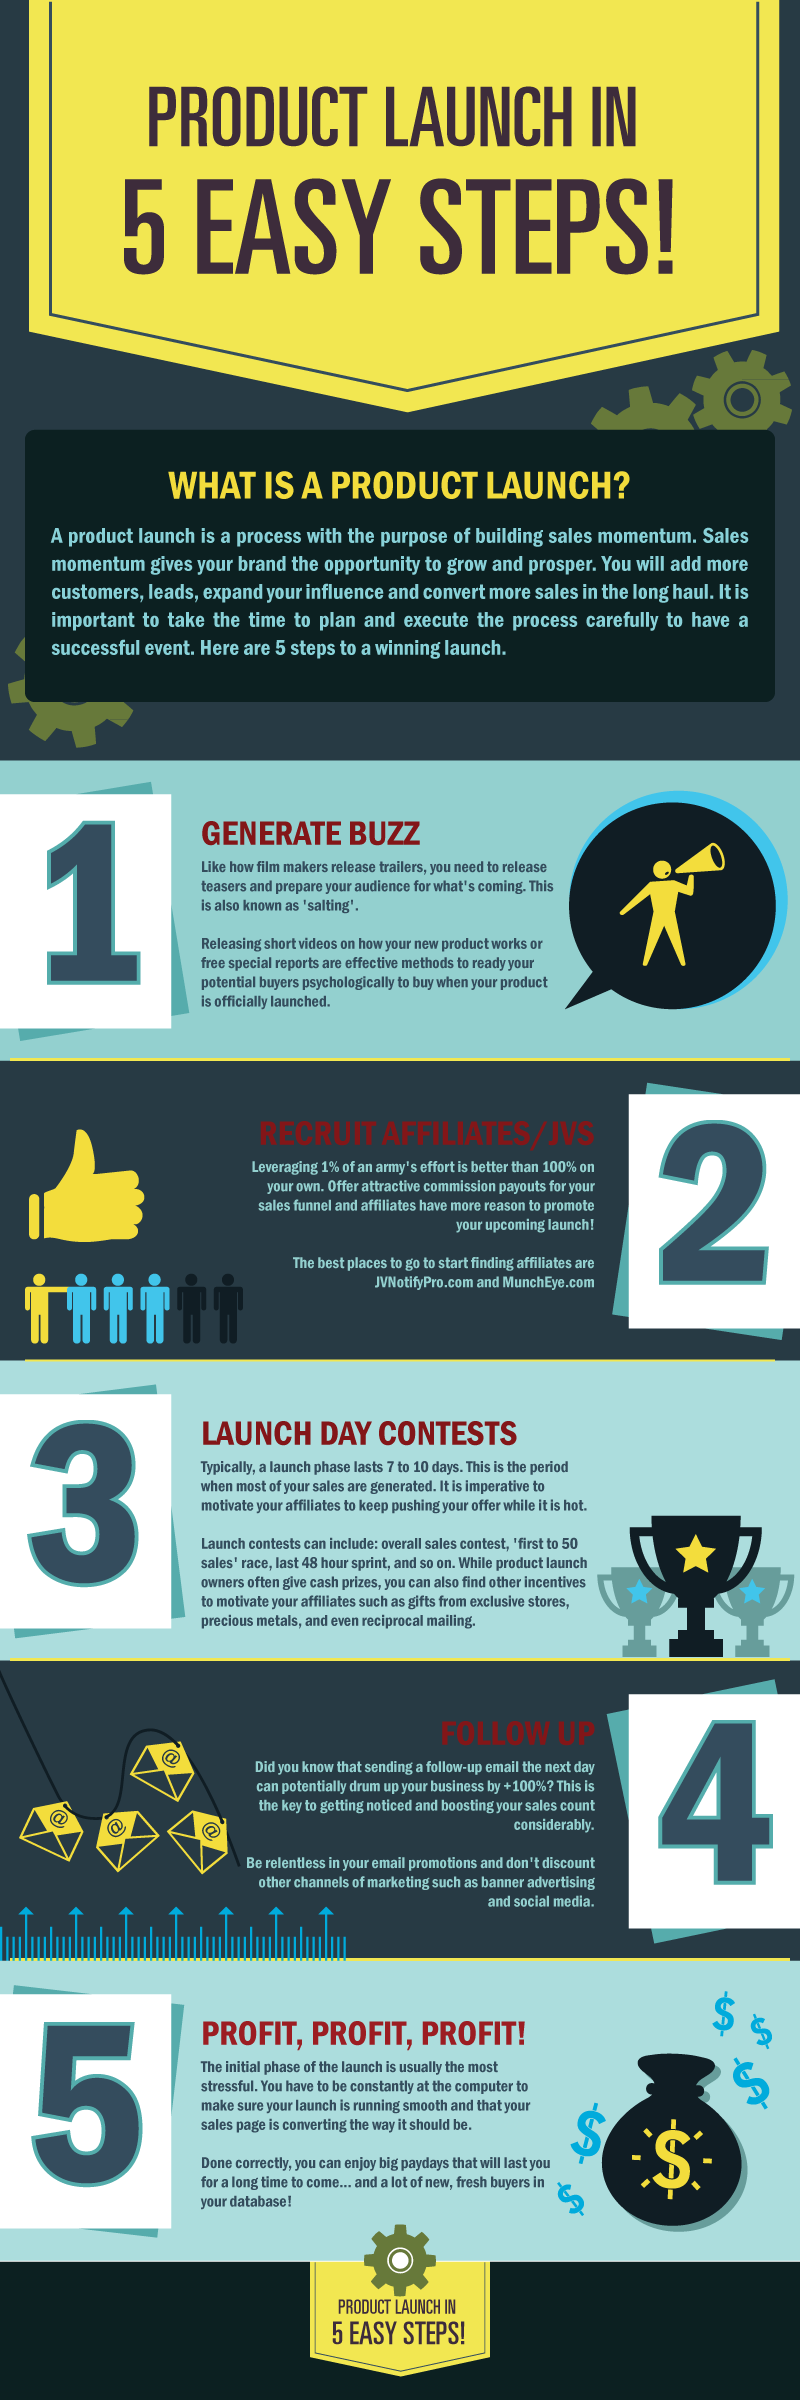 01---Product-Launch-in-5-Easy-Steps